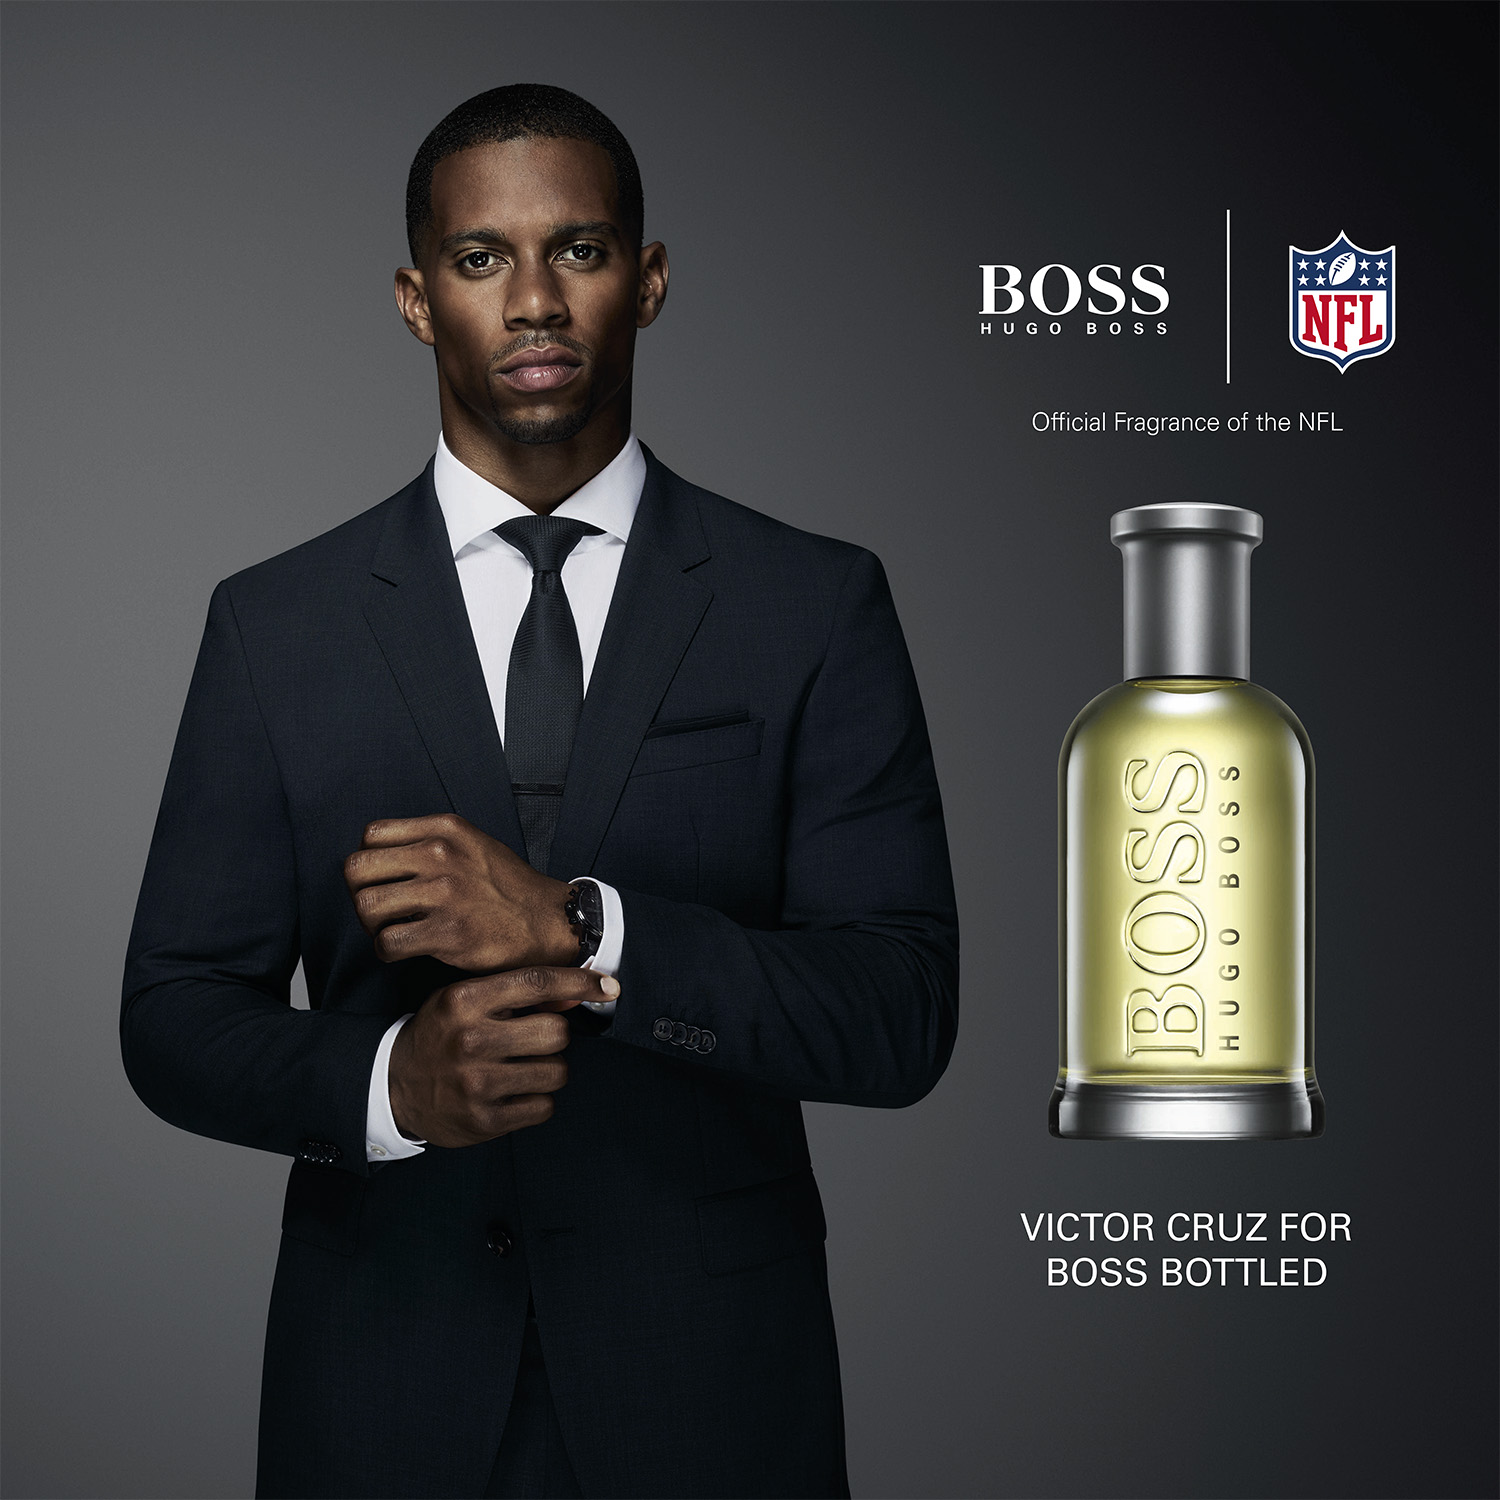 Board_NFL_VictorCruz_Cropping_BB_16cropping_v1[1]-11